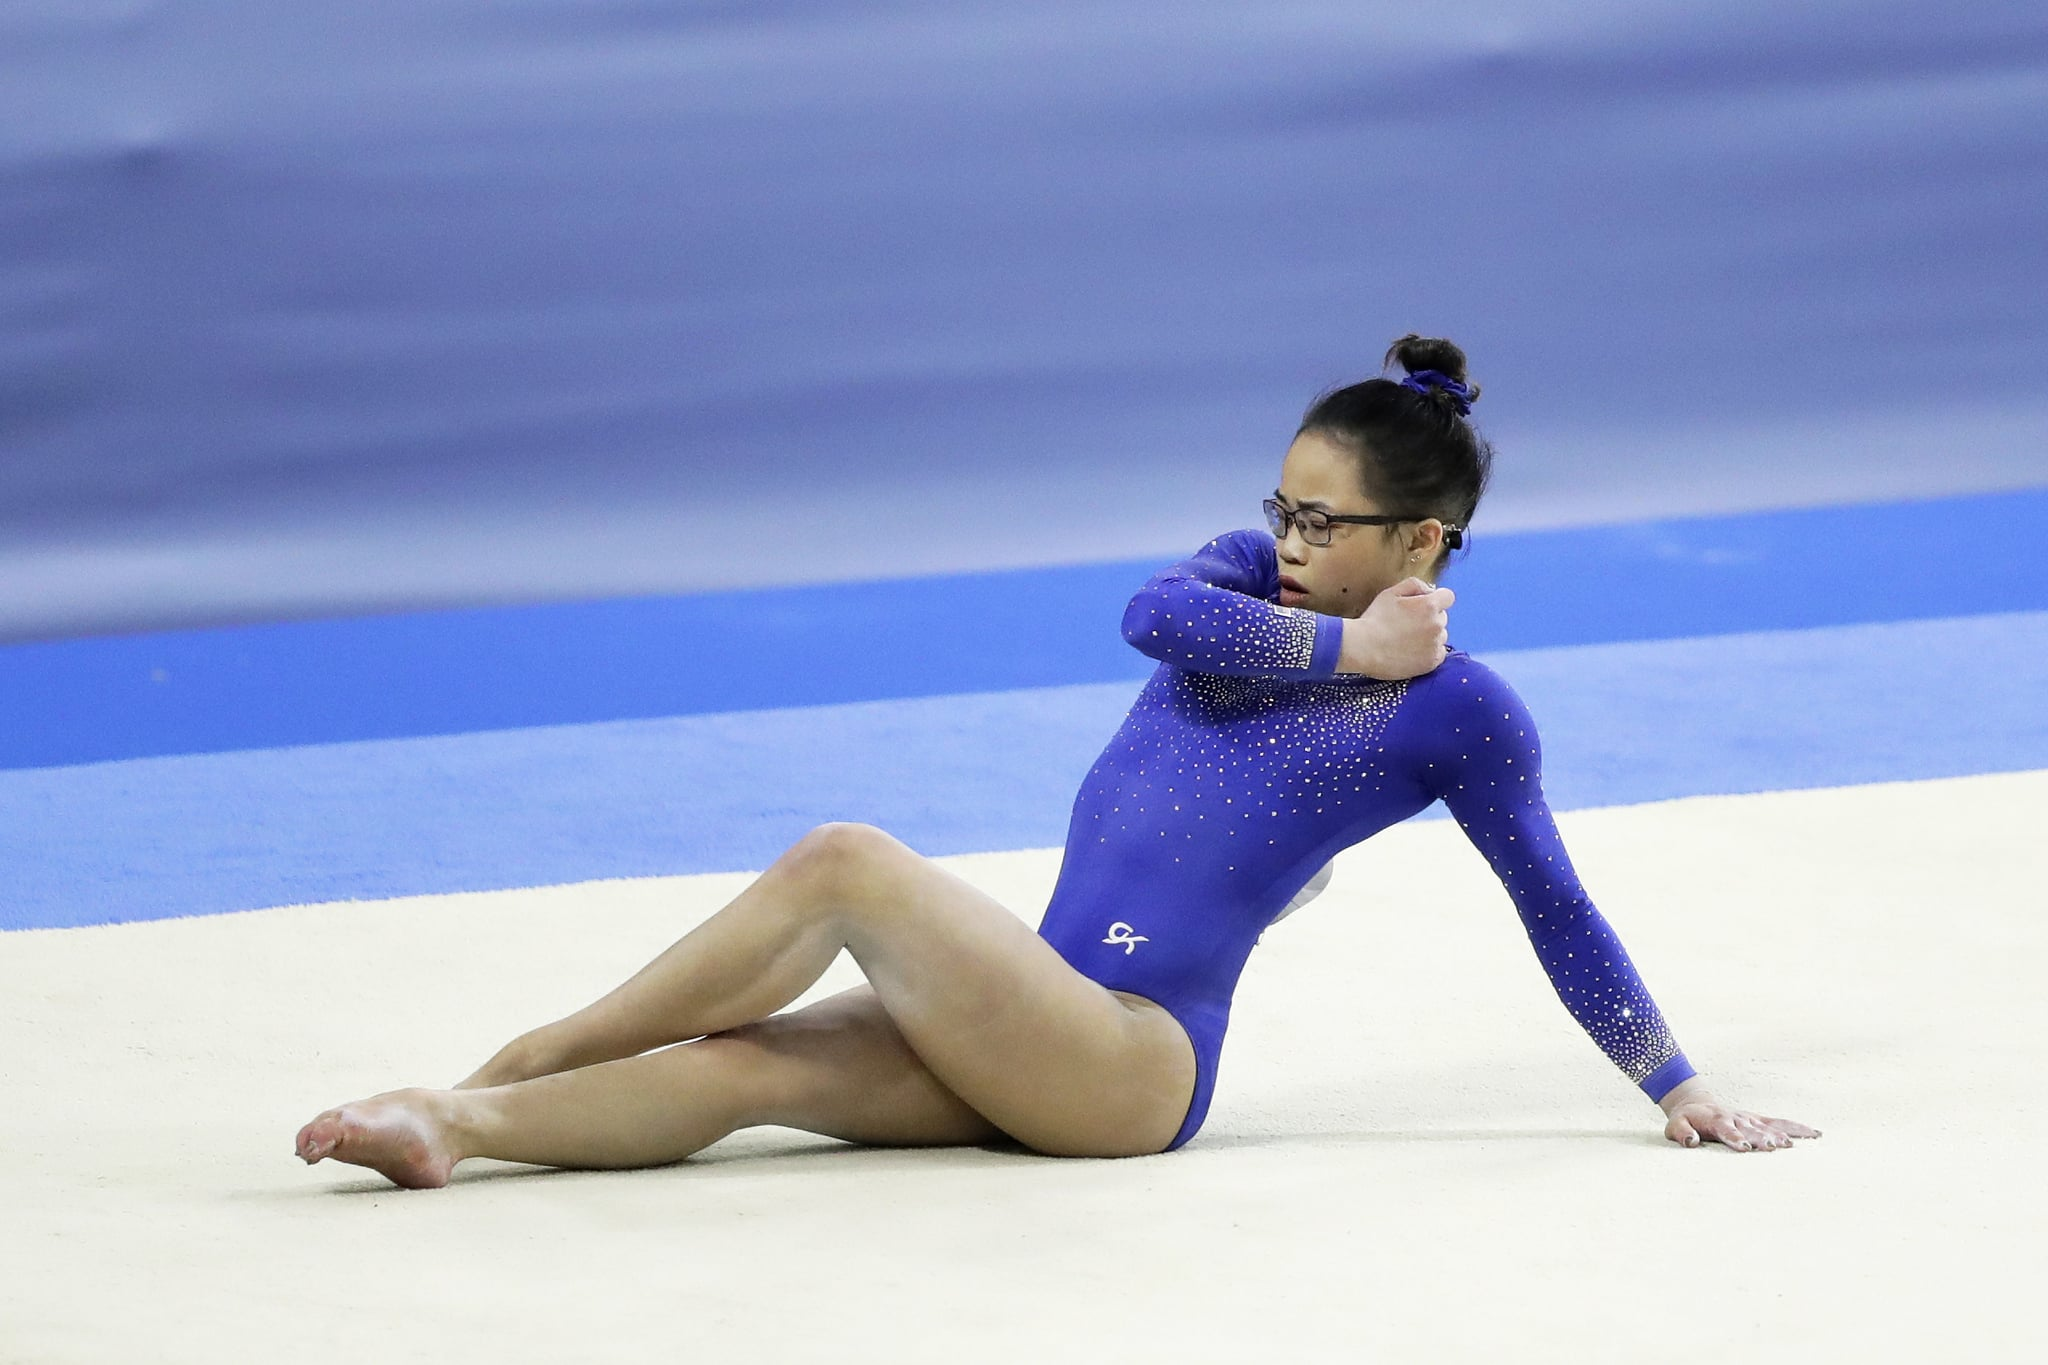 CHOFU, JAPAN - APRIL 07: Morgan Hurd of the United States competes in the Women's Floor Exercises during the FIG Artistic Gymnastics All-Around World Cup Tokyo at Musashino Forest Sport Plaza on April 7, 2019 in Chofu, Tokyo, Japan. (Photo by Kiyoshi Ota/Getty Images)